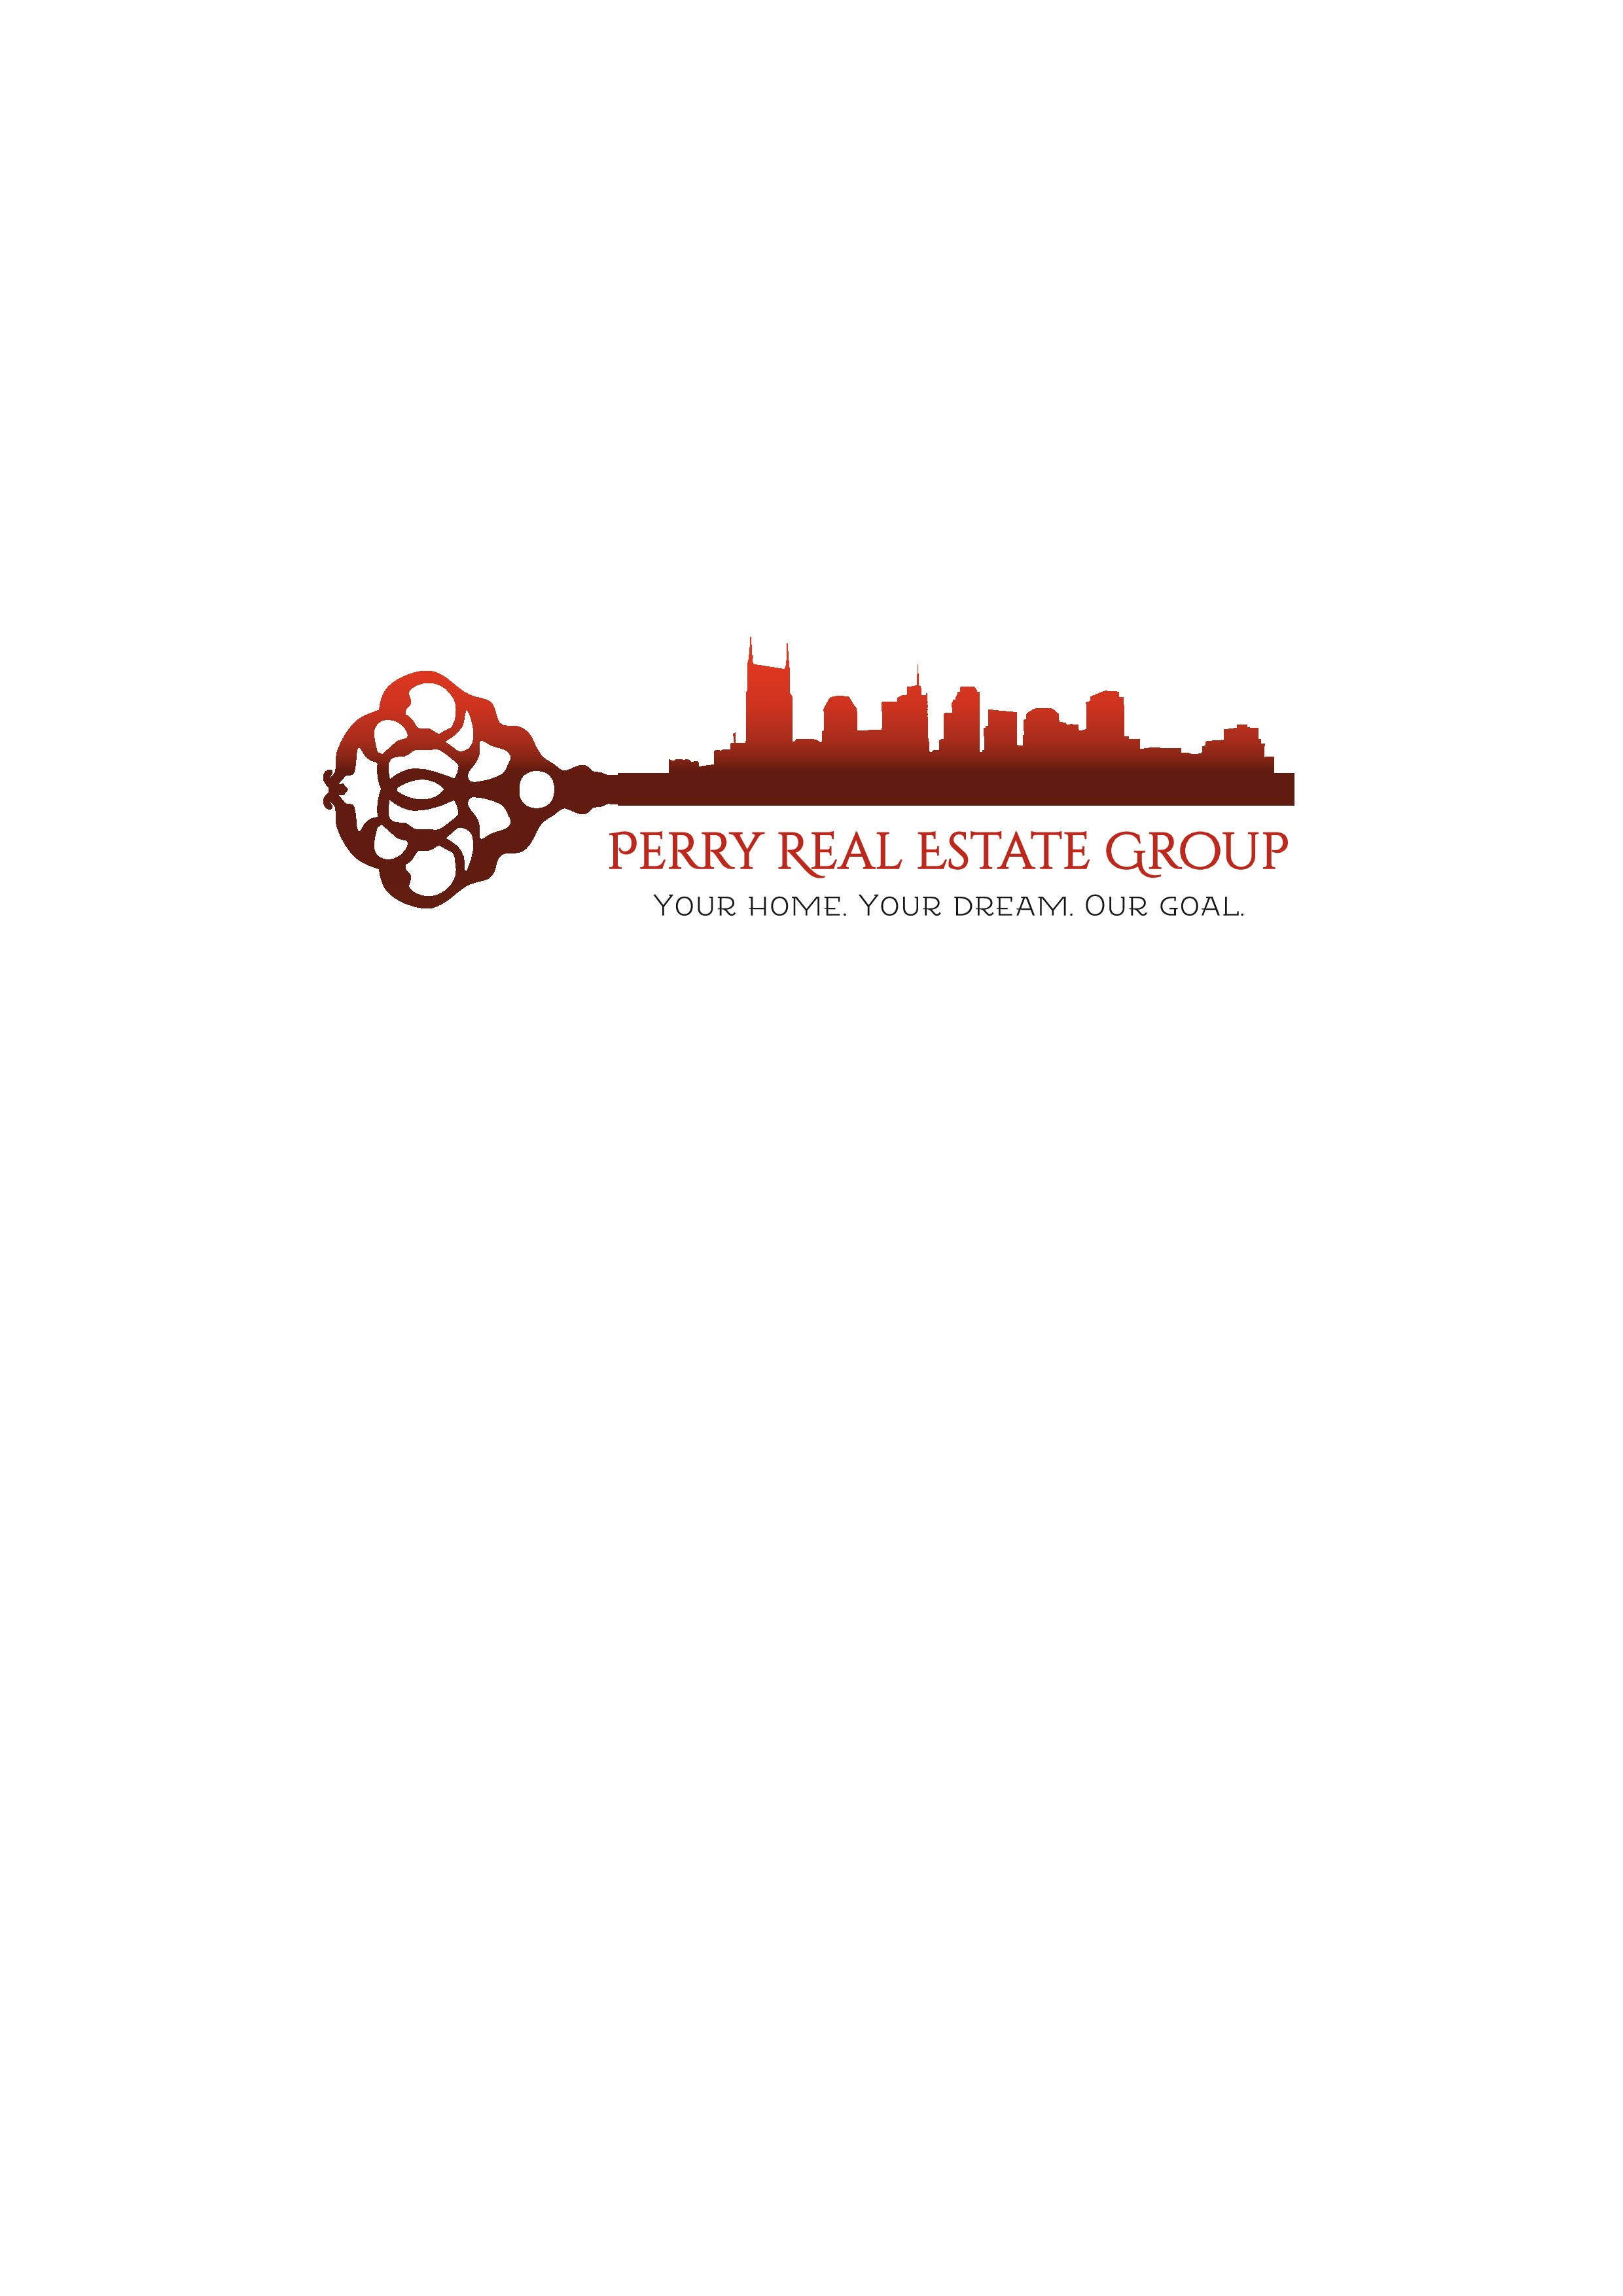 Unique Nashville Real Estate Logo. Who will design it the best?